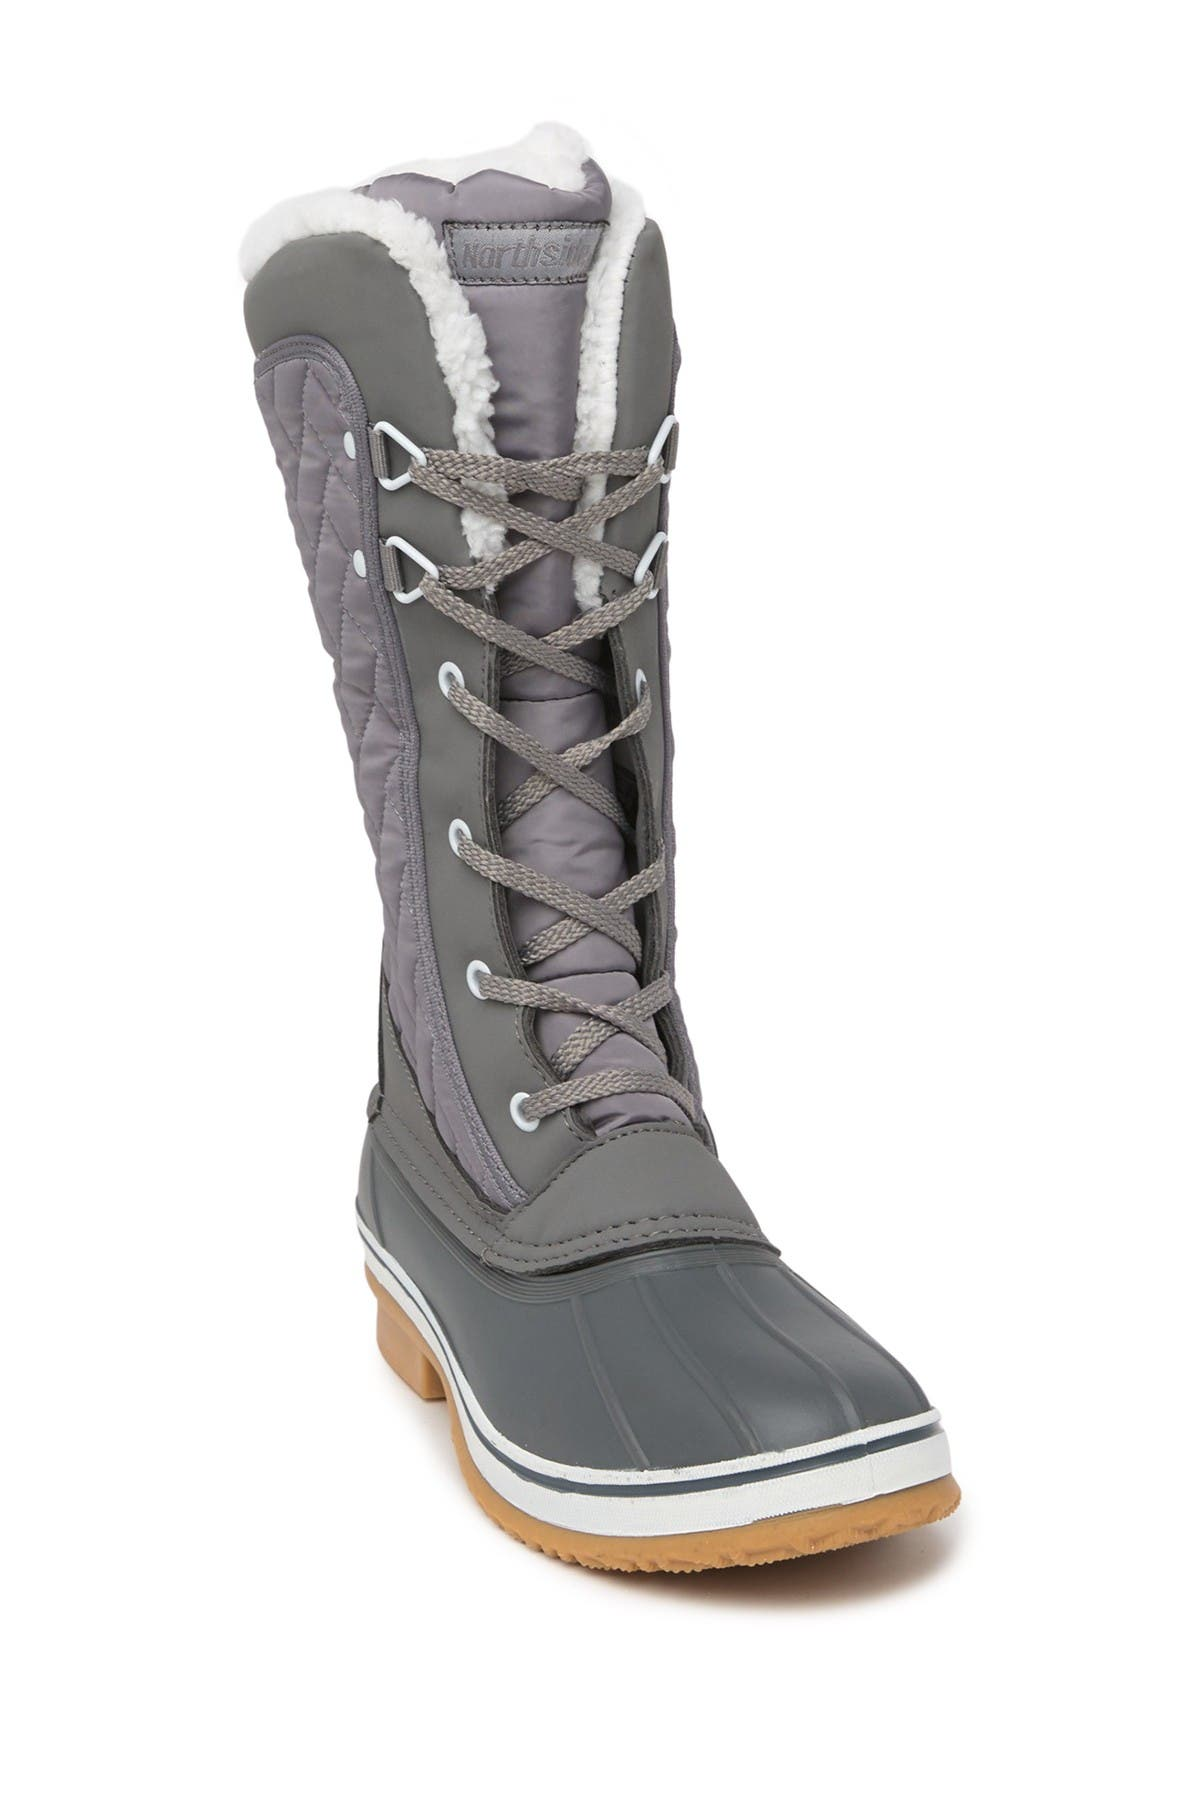 Image of NORTHSIDE Sacramento Faux Shearling Lined Duck Boot